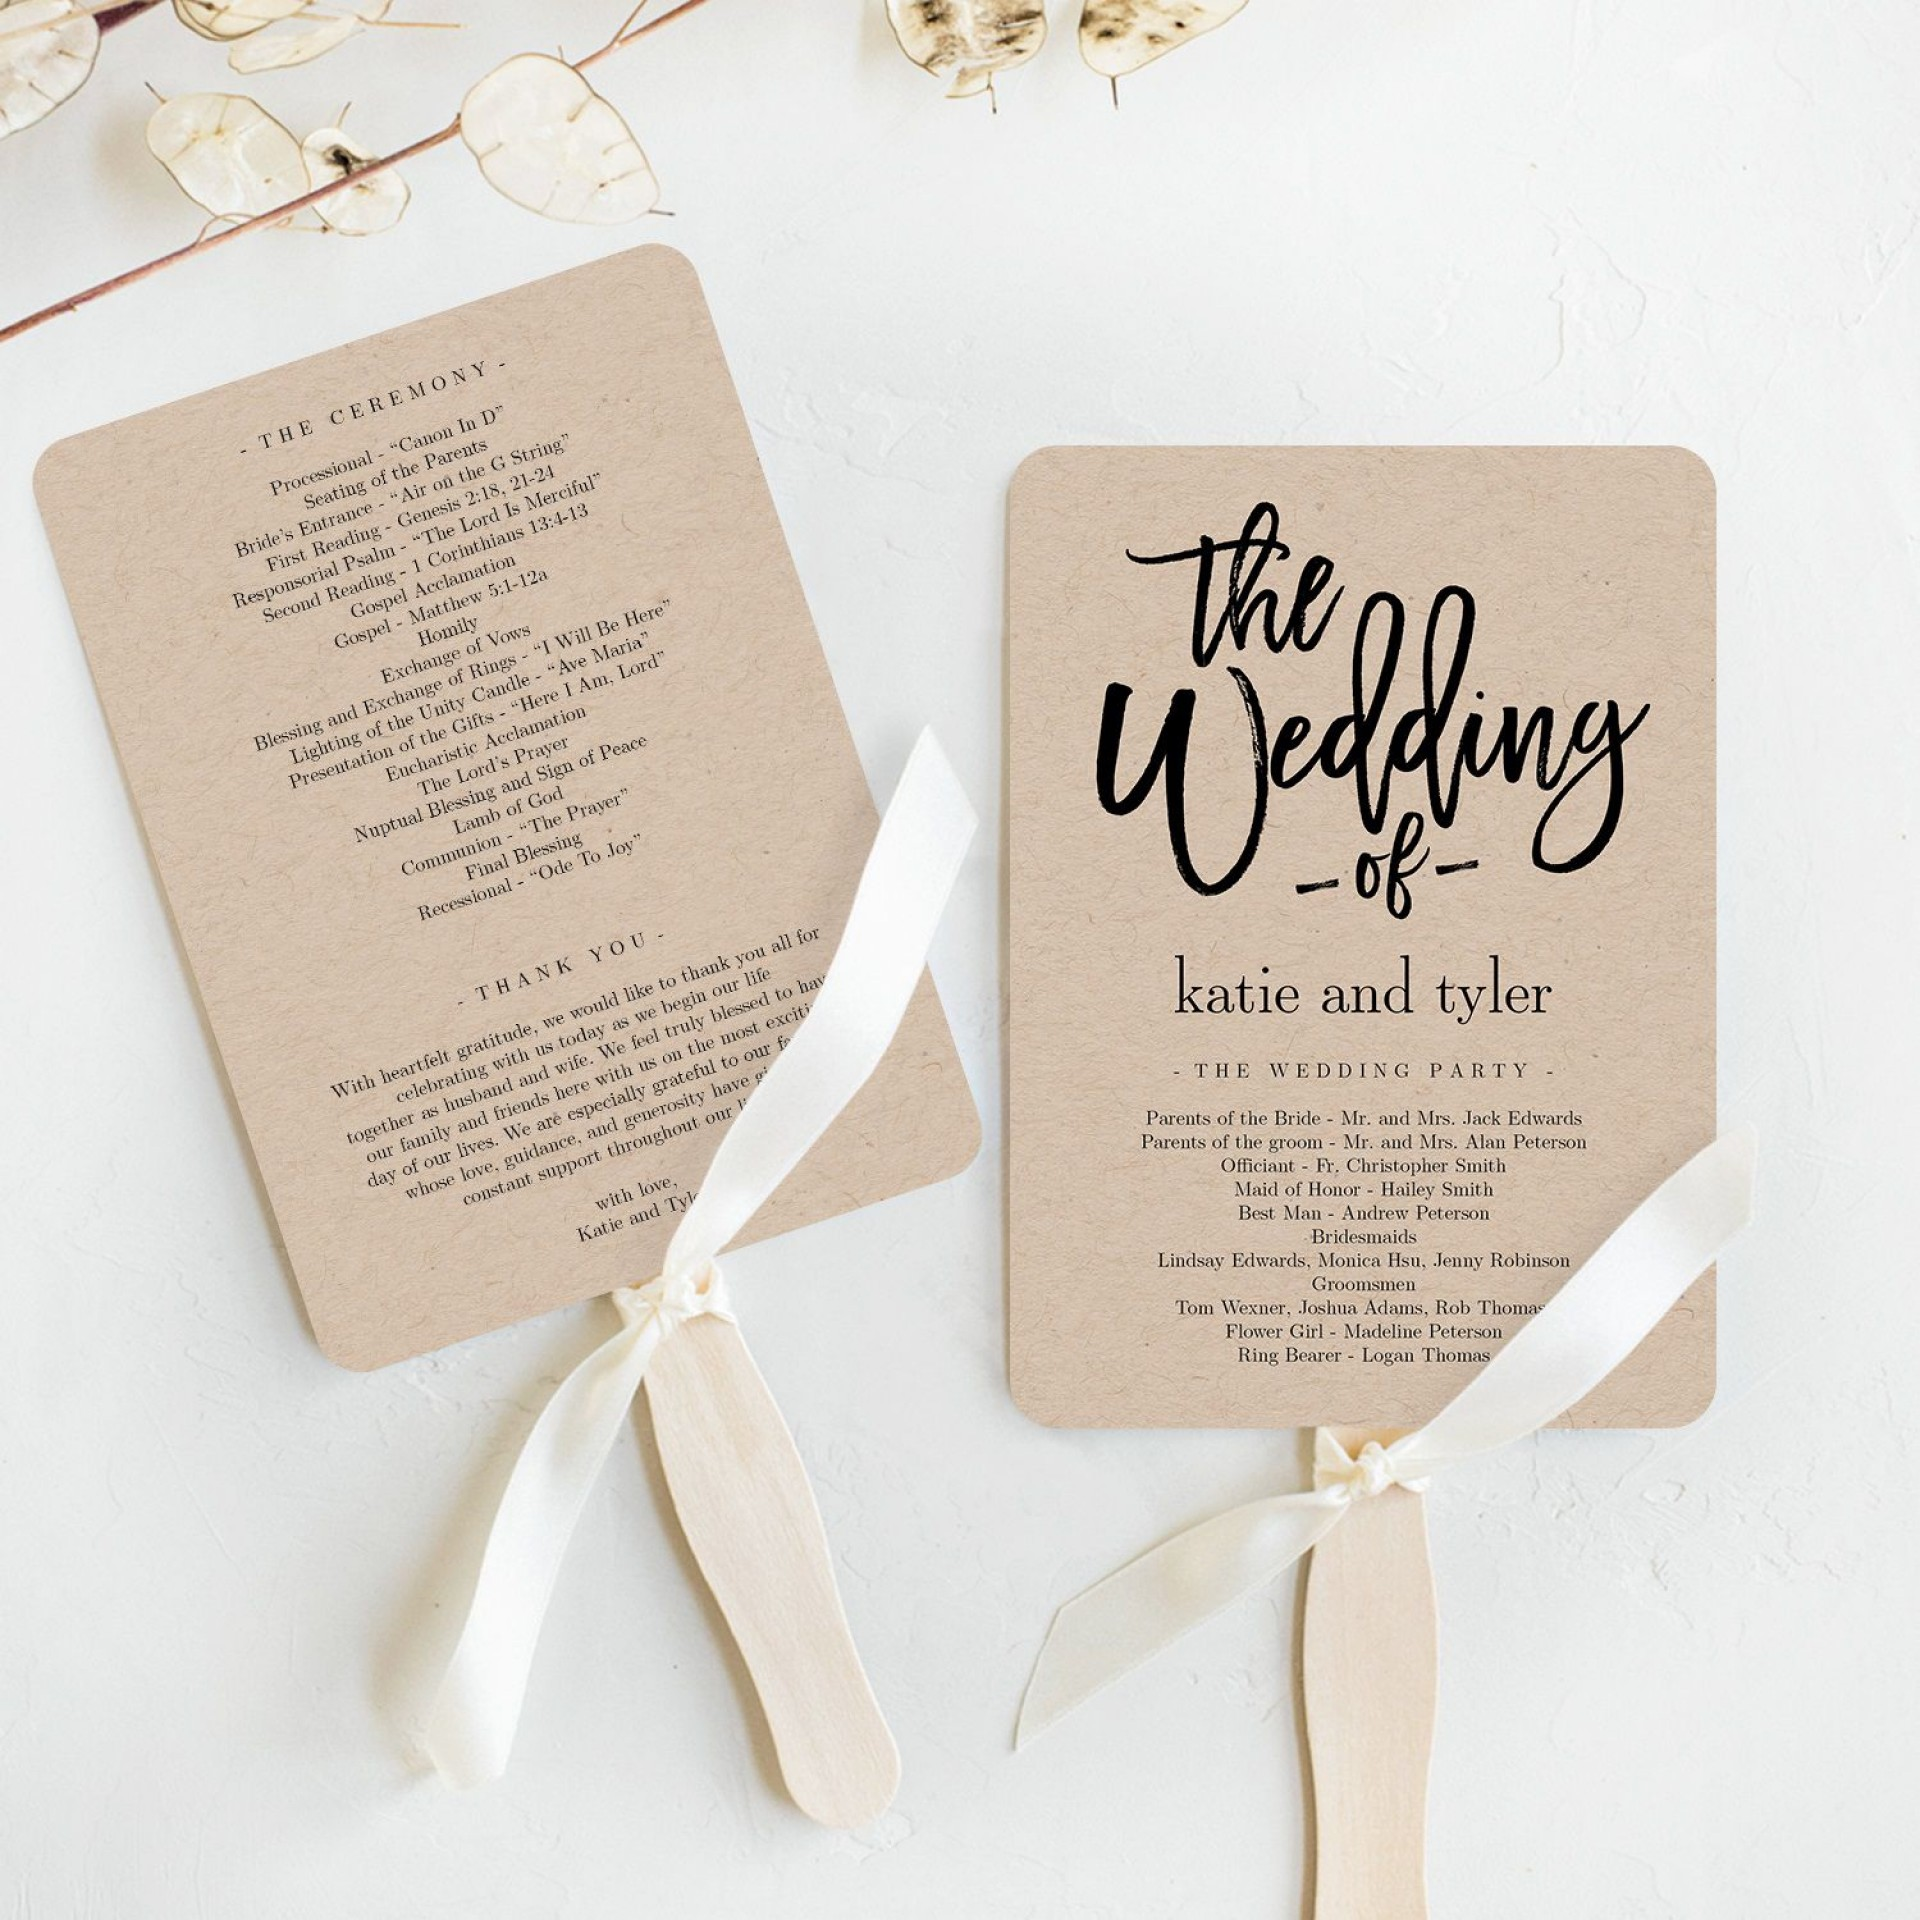 003 Astounding Wedding Program Fan Template High Def  Free Word Paddle Downloadable That Can Be Printed1920